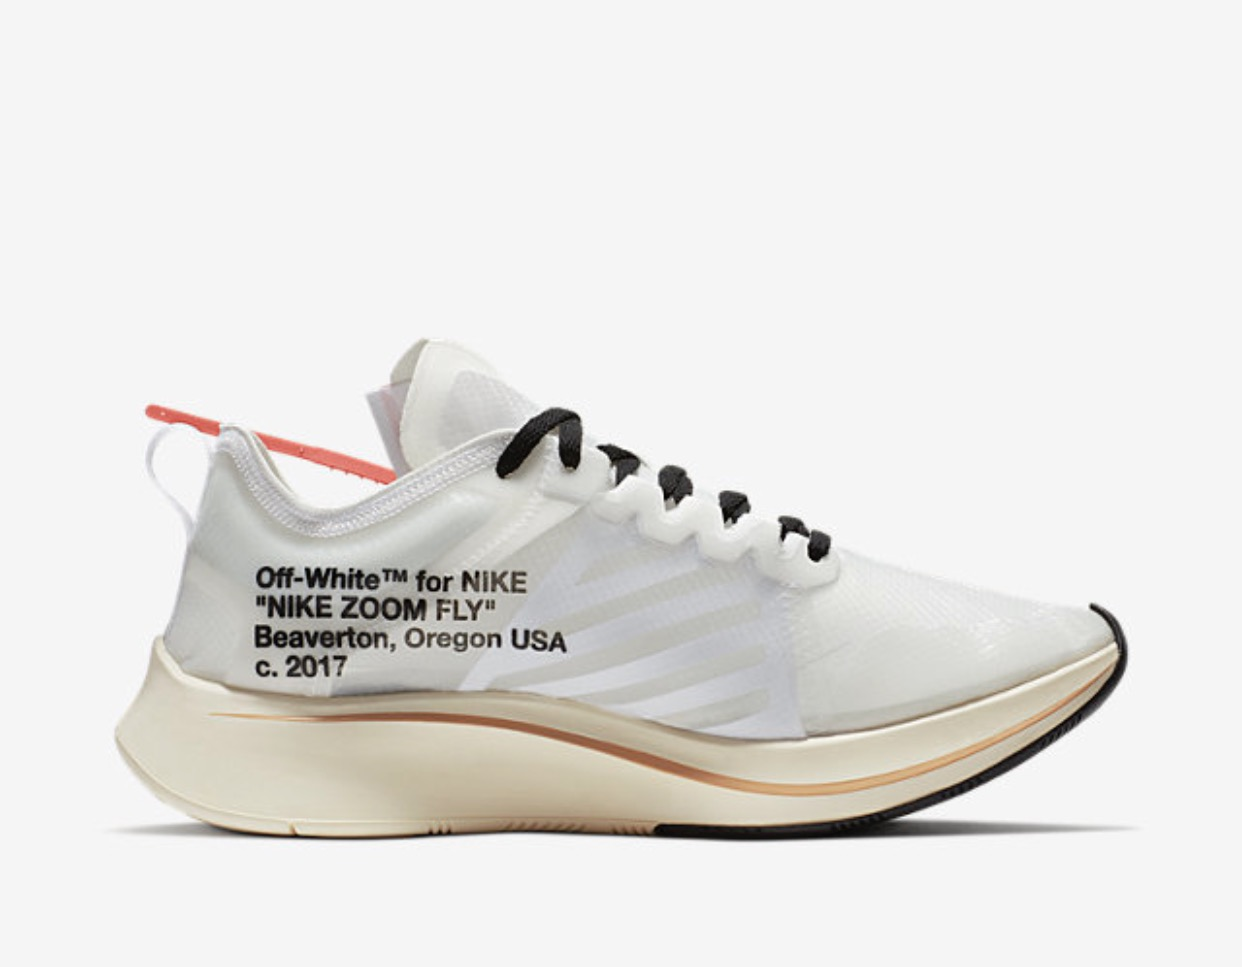 Nike x off-white limited sneakers brand new U.K. 10